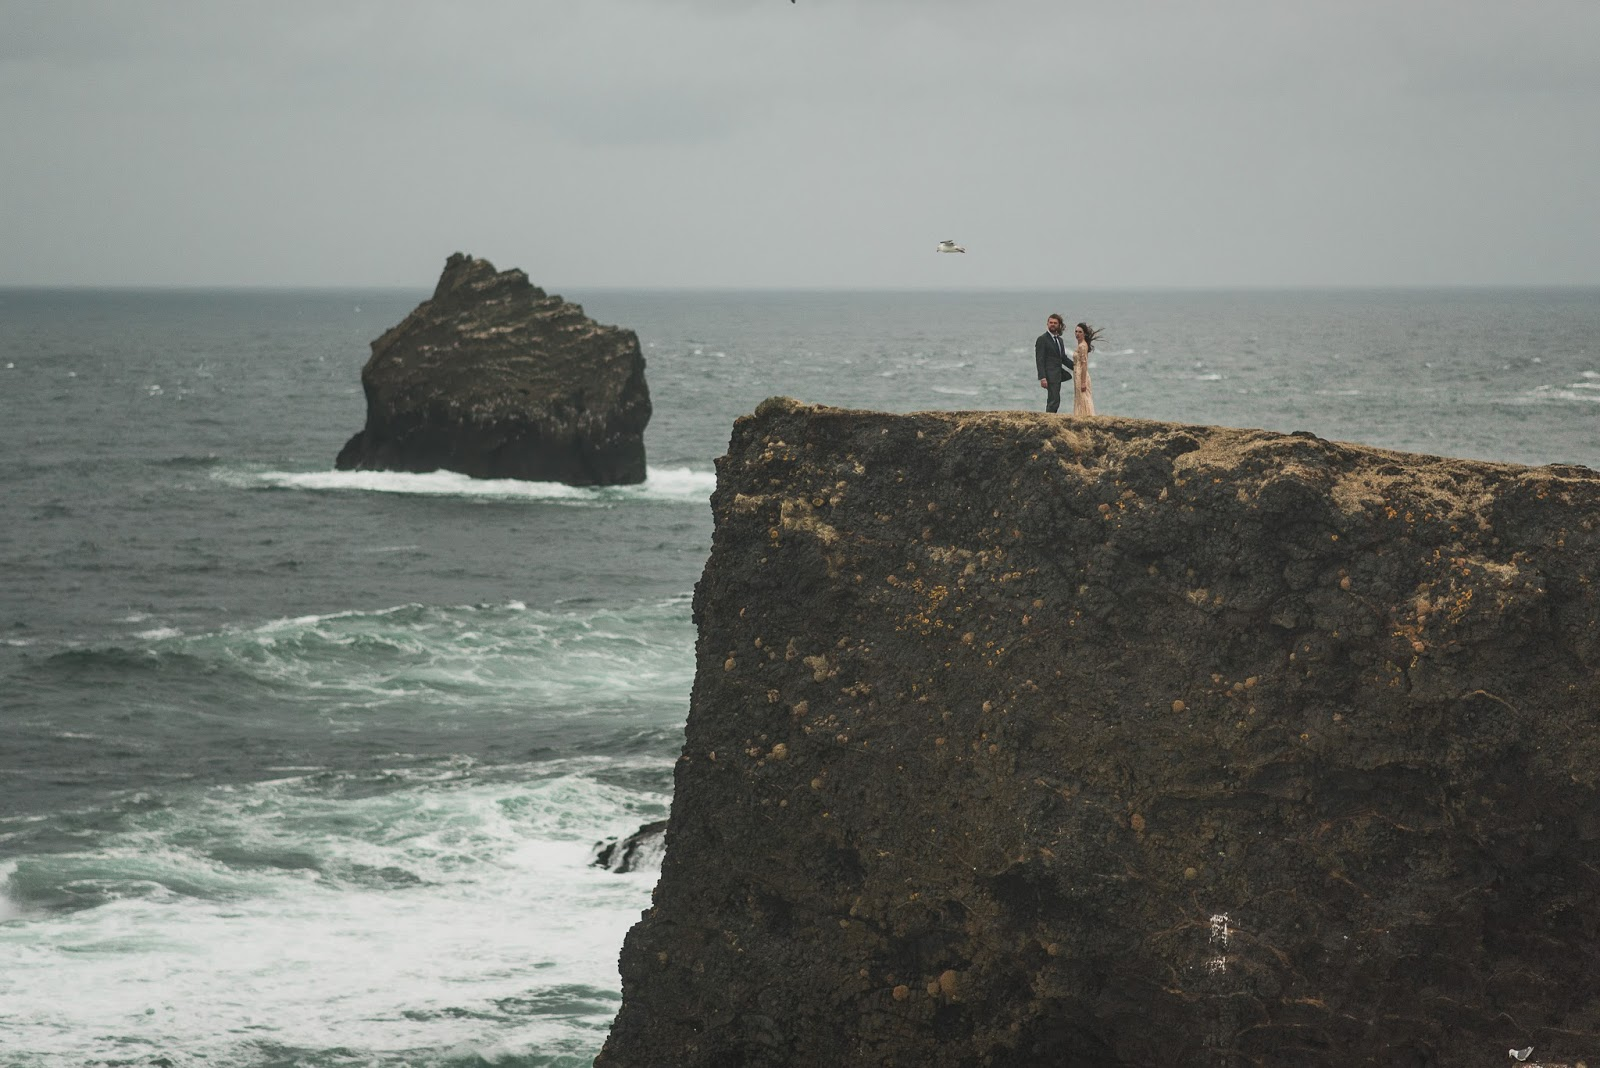 Cliffside Elopement in Iceland